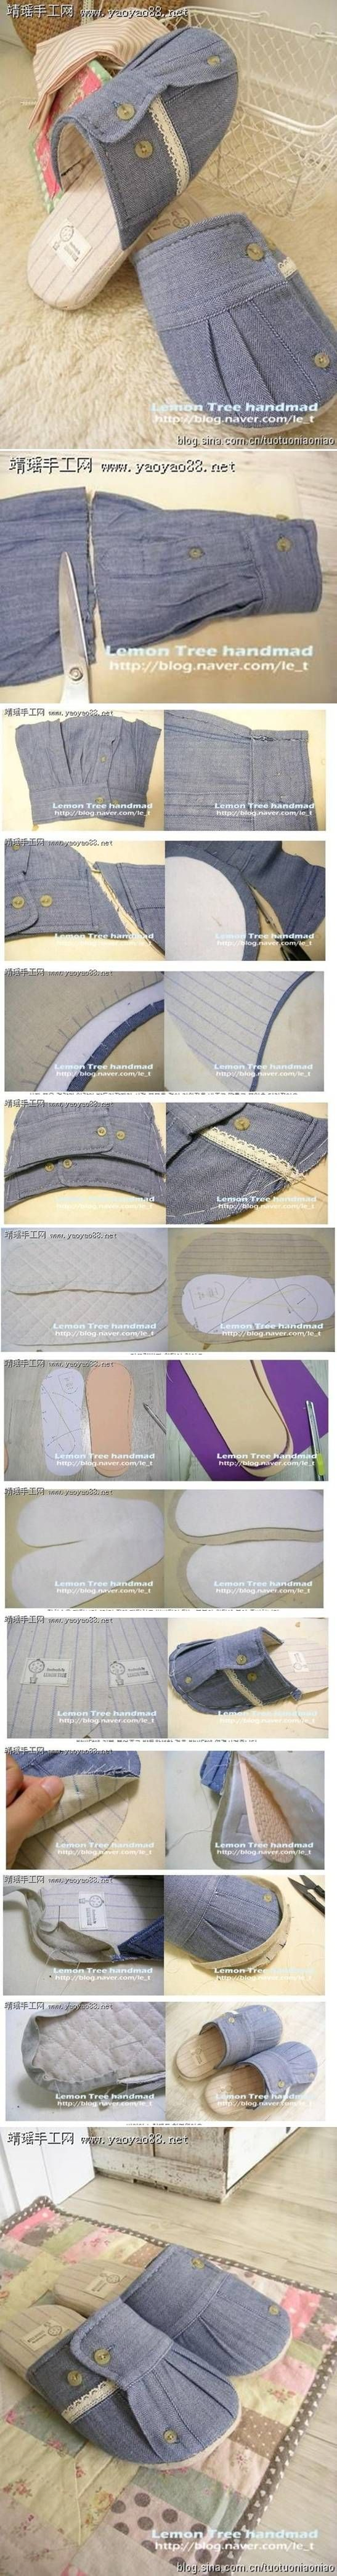 DIY Old Clothes Cuff Slipper DIY Old Clothes Cuff Slipper